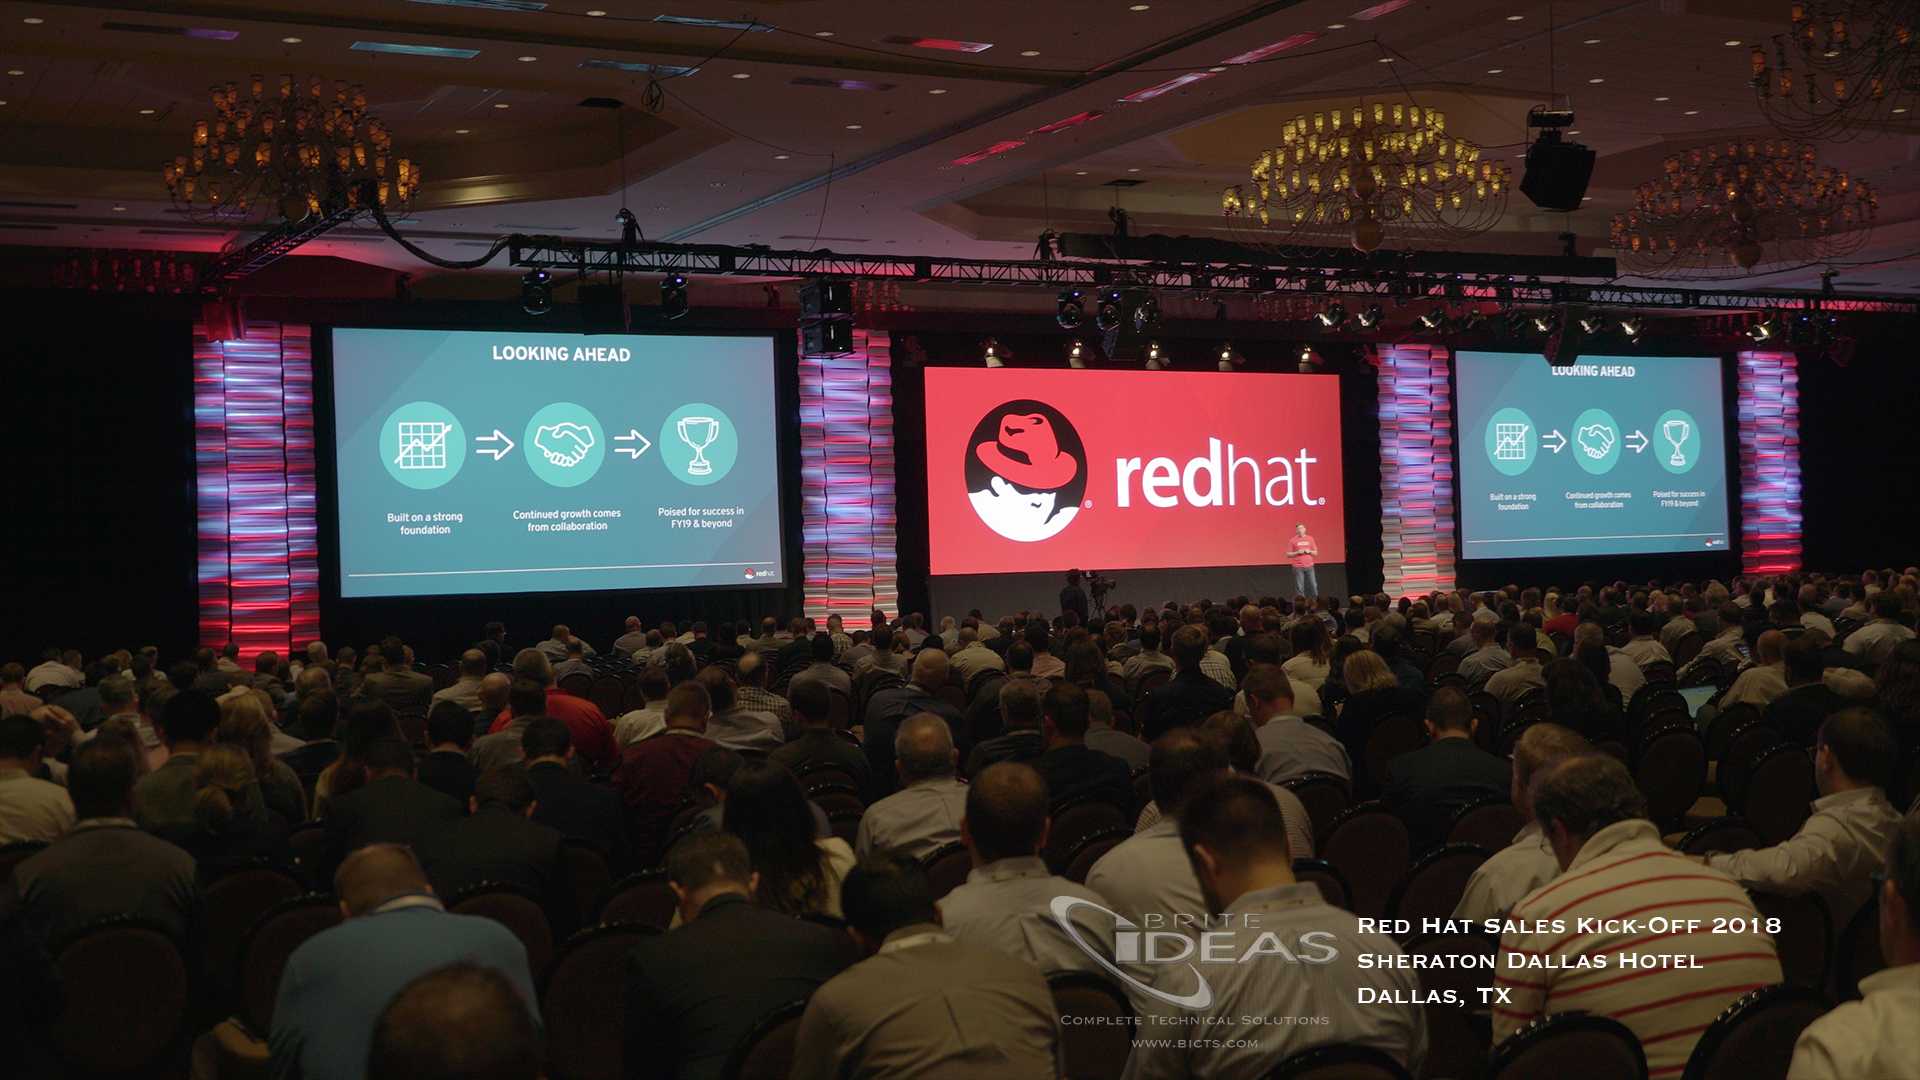 RedHat SKO_2018_1_Corporate.jpg